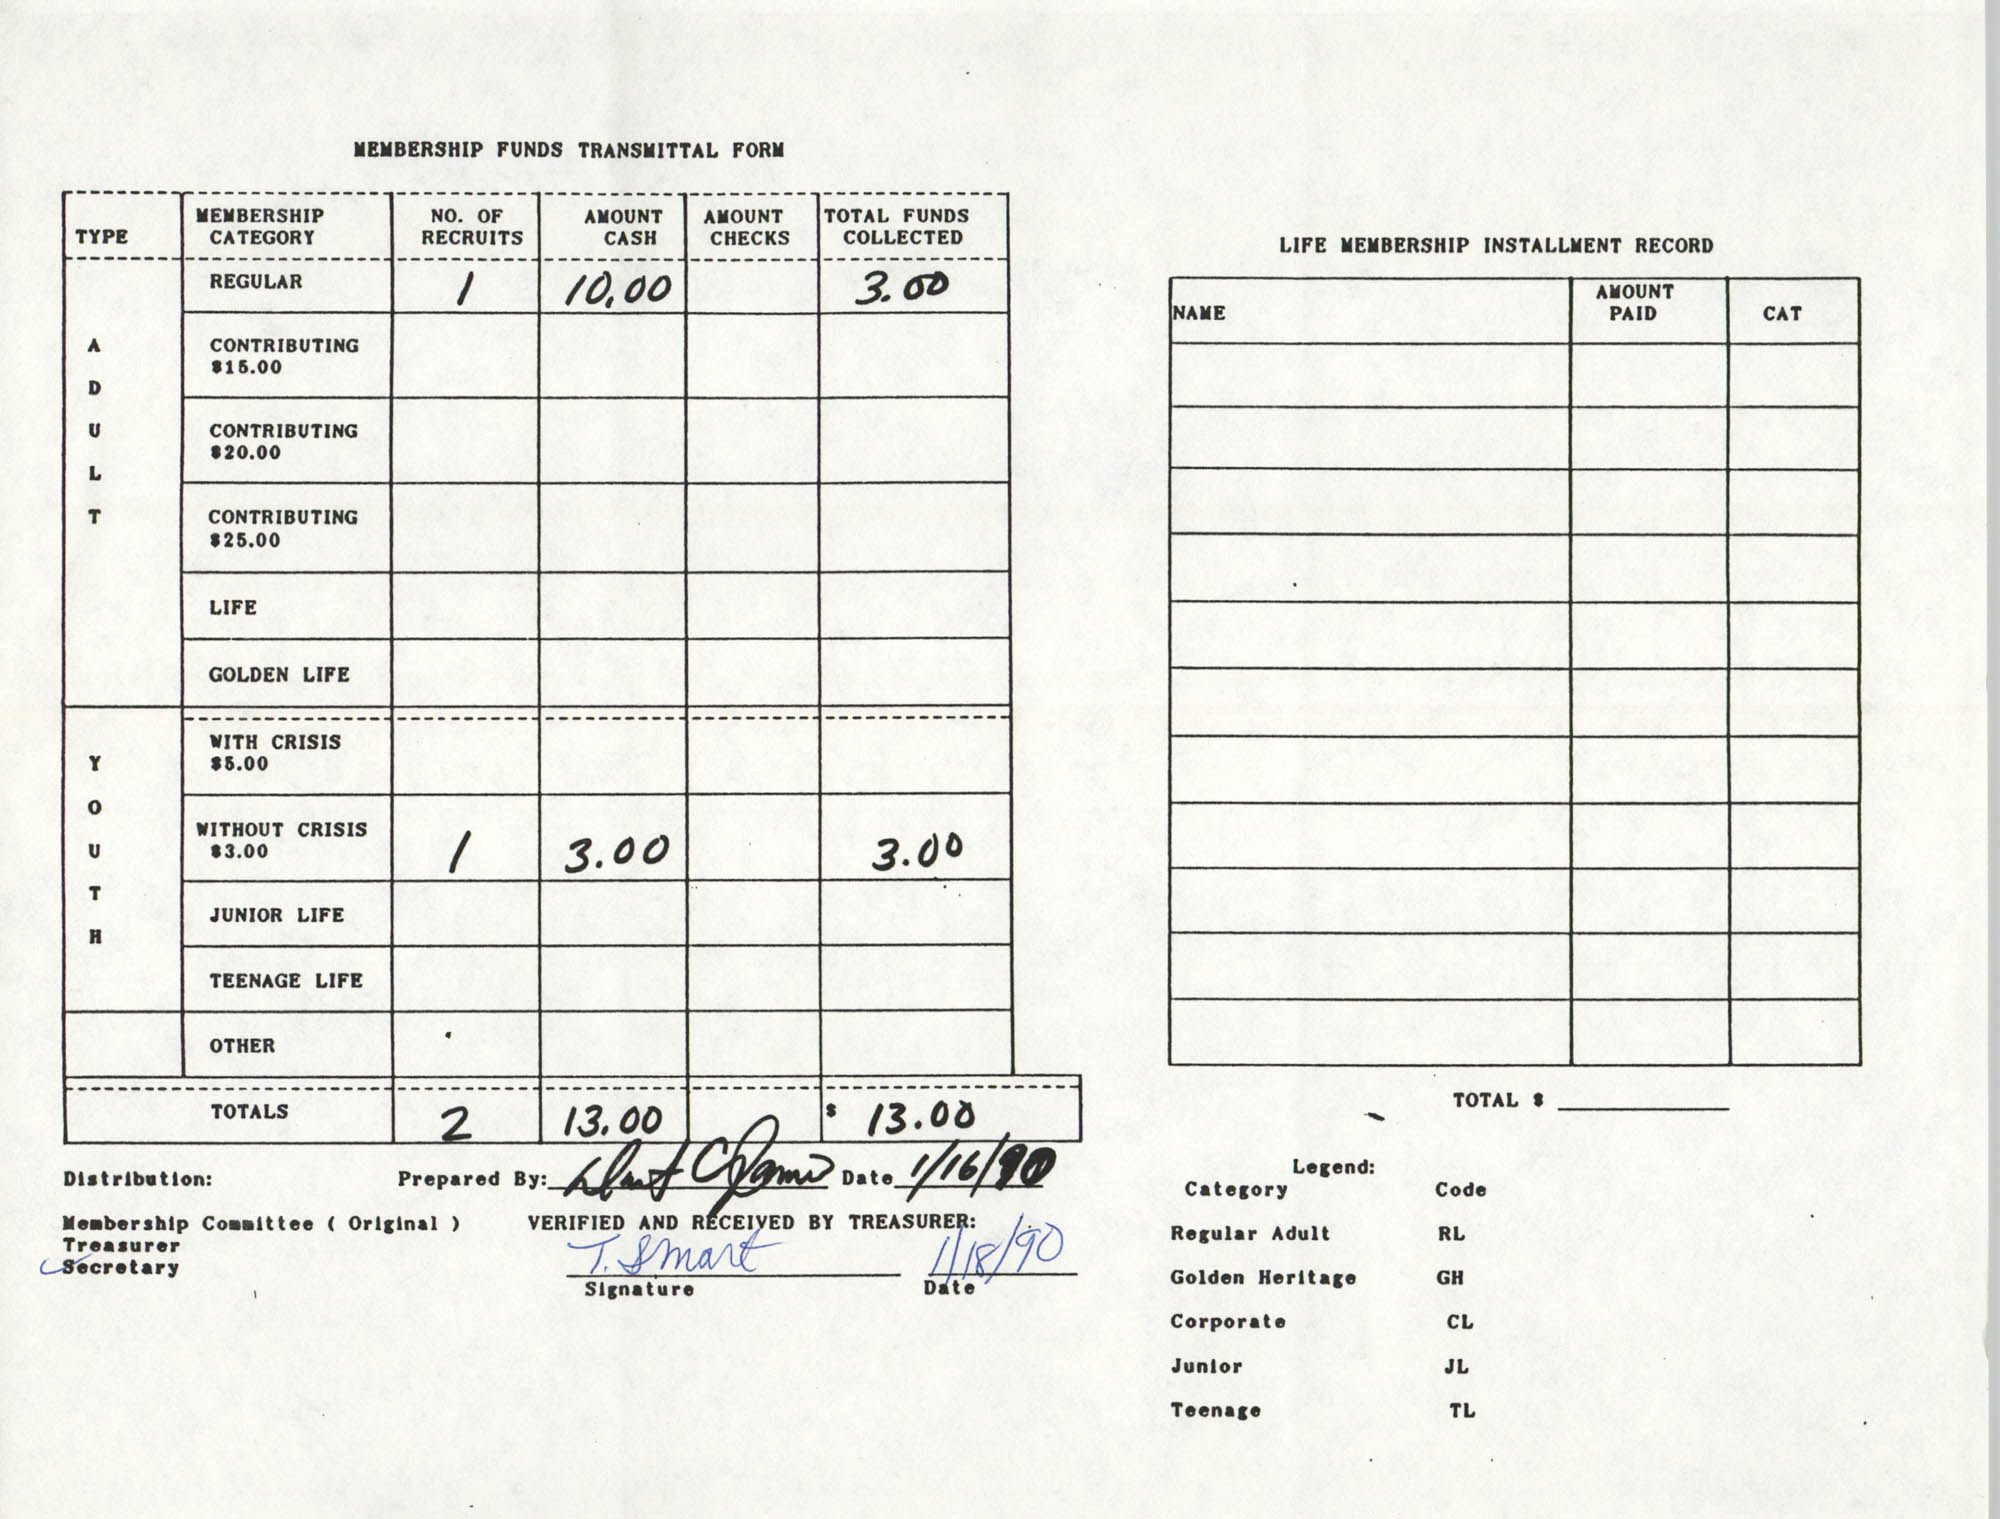 Charleston Branch of the NAACP Funds Transmittal Forms, January 1990, Page 6